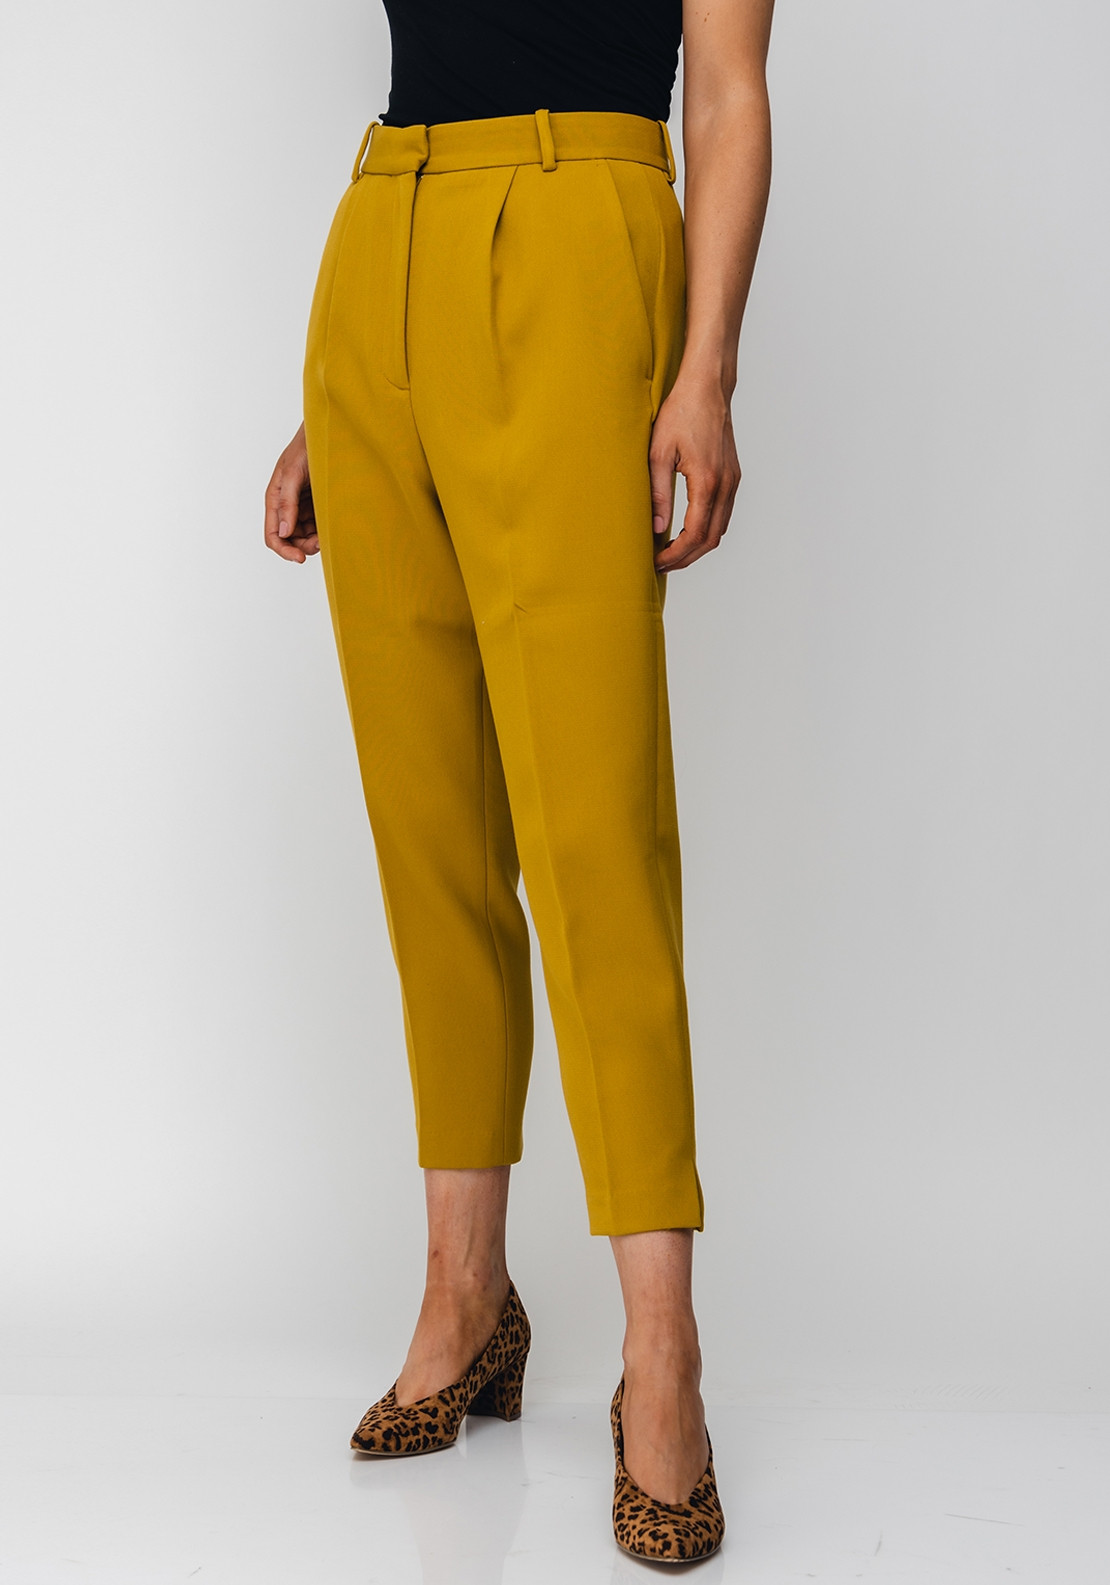 French Connection AlIdo Sundae Suit Trousers, Mustard